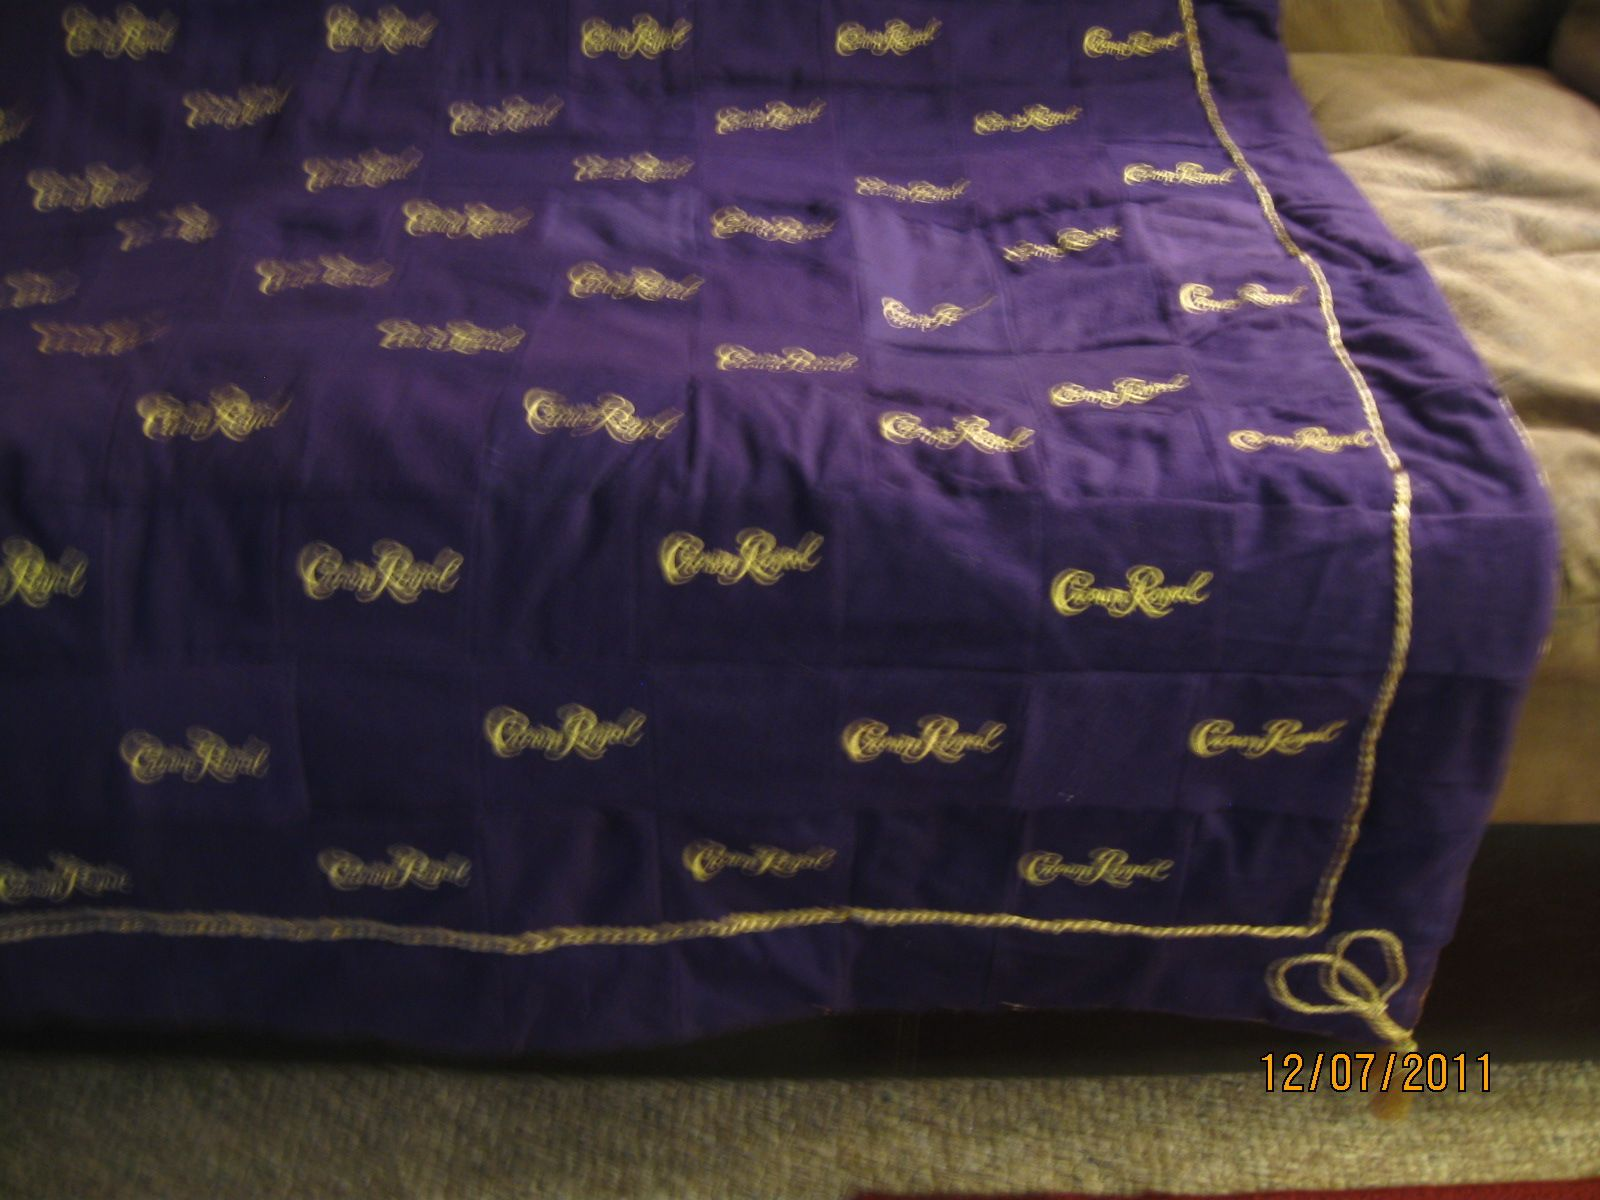 quilt made out of crown royal bags | Posted by lindsey kokkeler at ... : crown royal quilt pictures - Adamdwight.com